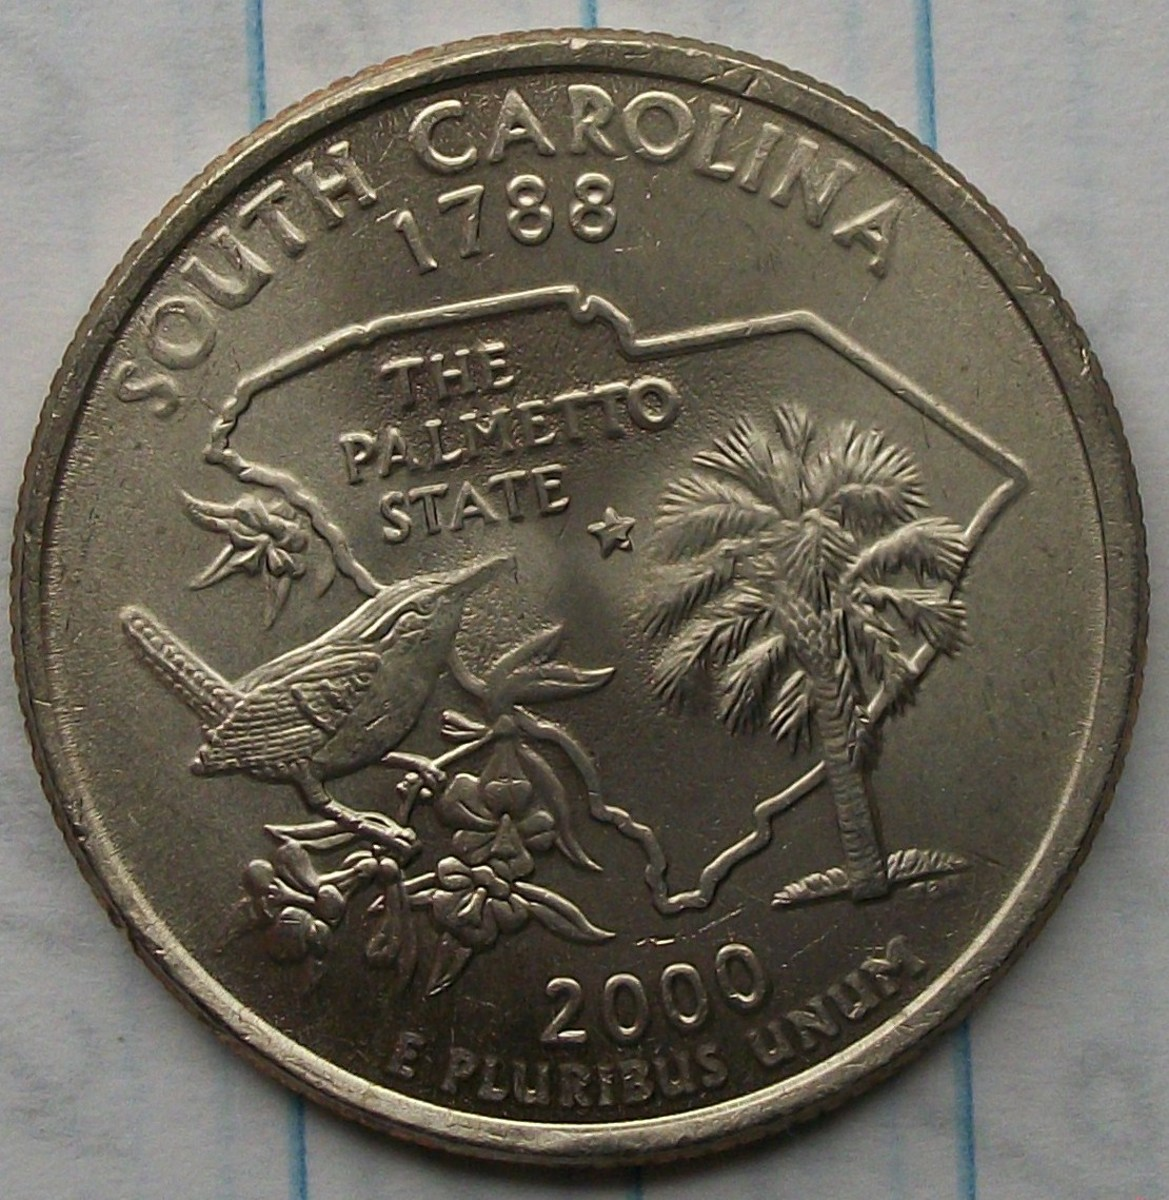 2008P South Carolina Statehood Quarter Doubled die reverse.